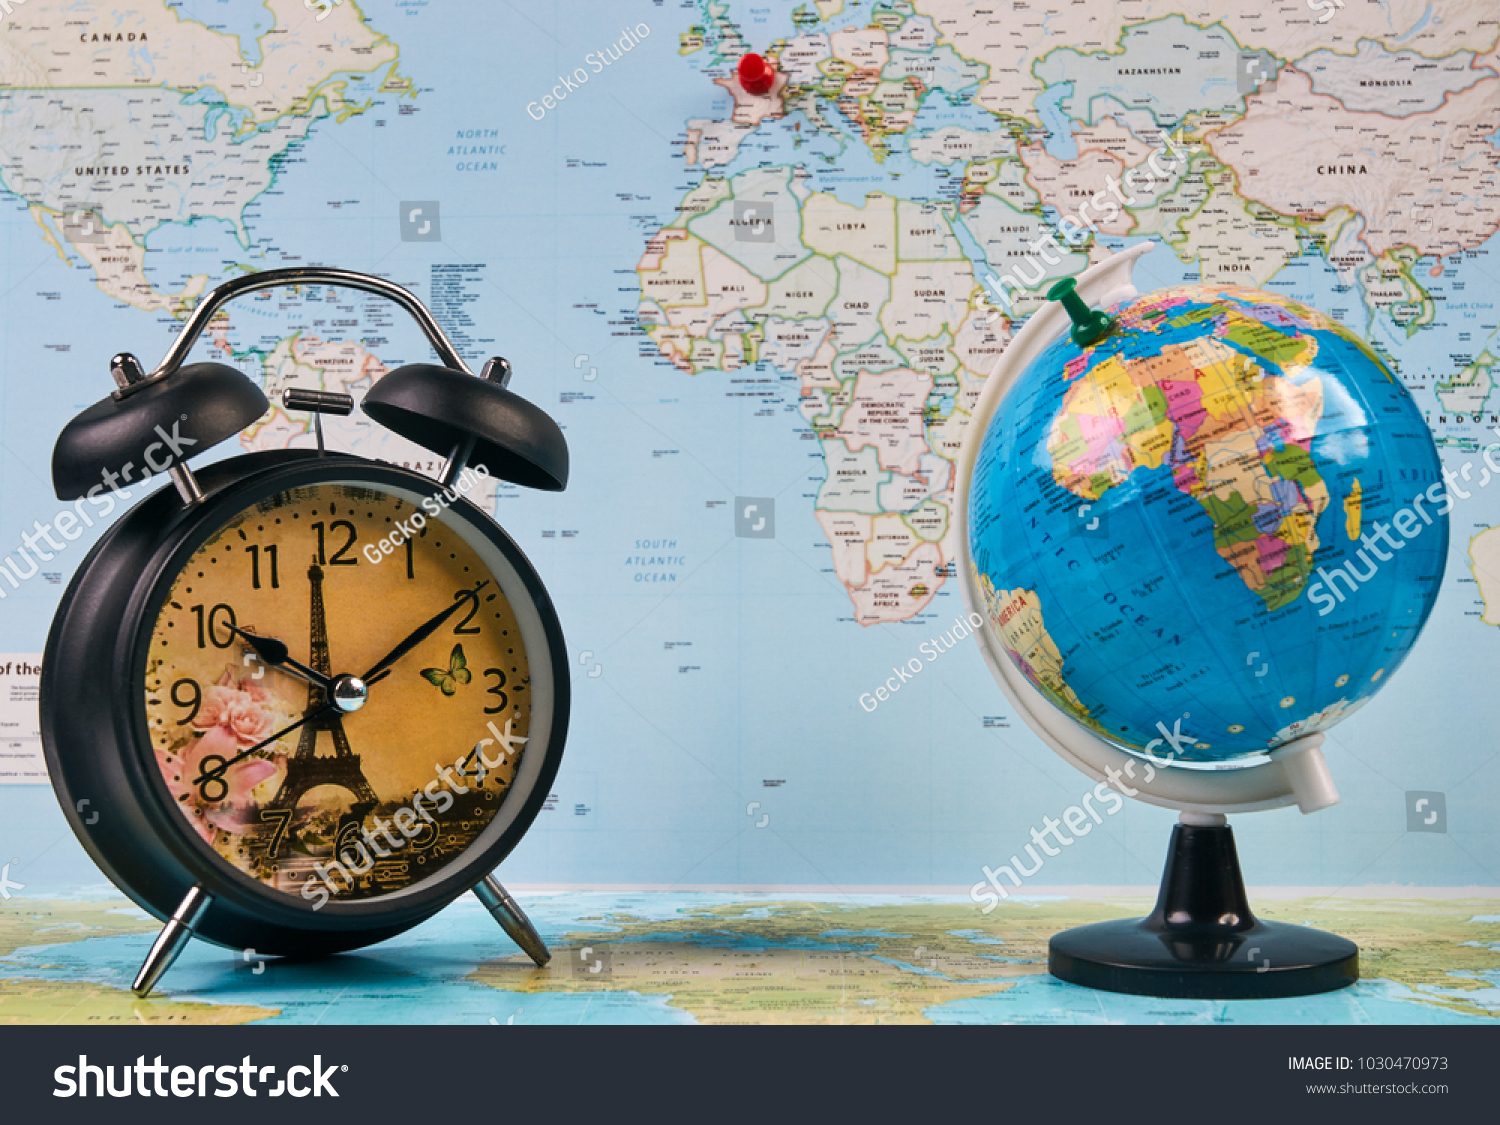 Planing travel france paris worldmap globe stock photo royalty free planing for travel to france paris with worldmap globe and alarm clock travel time in gumiabroncs Image collections